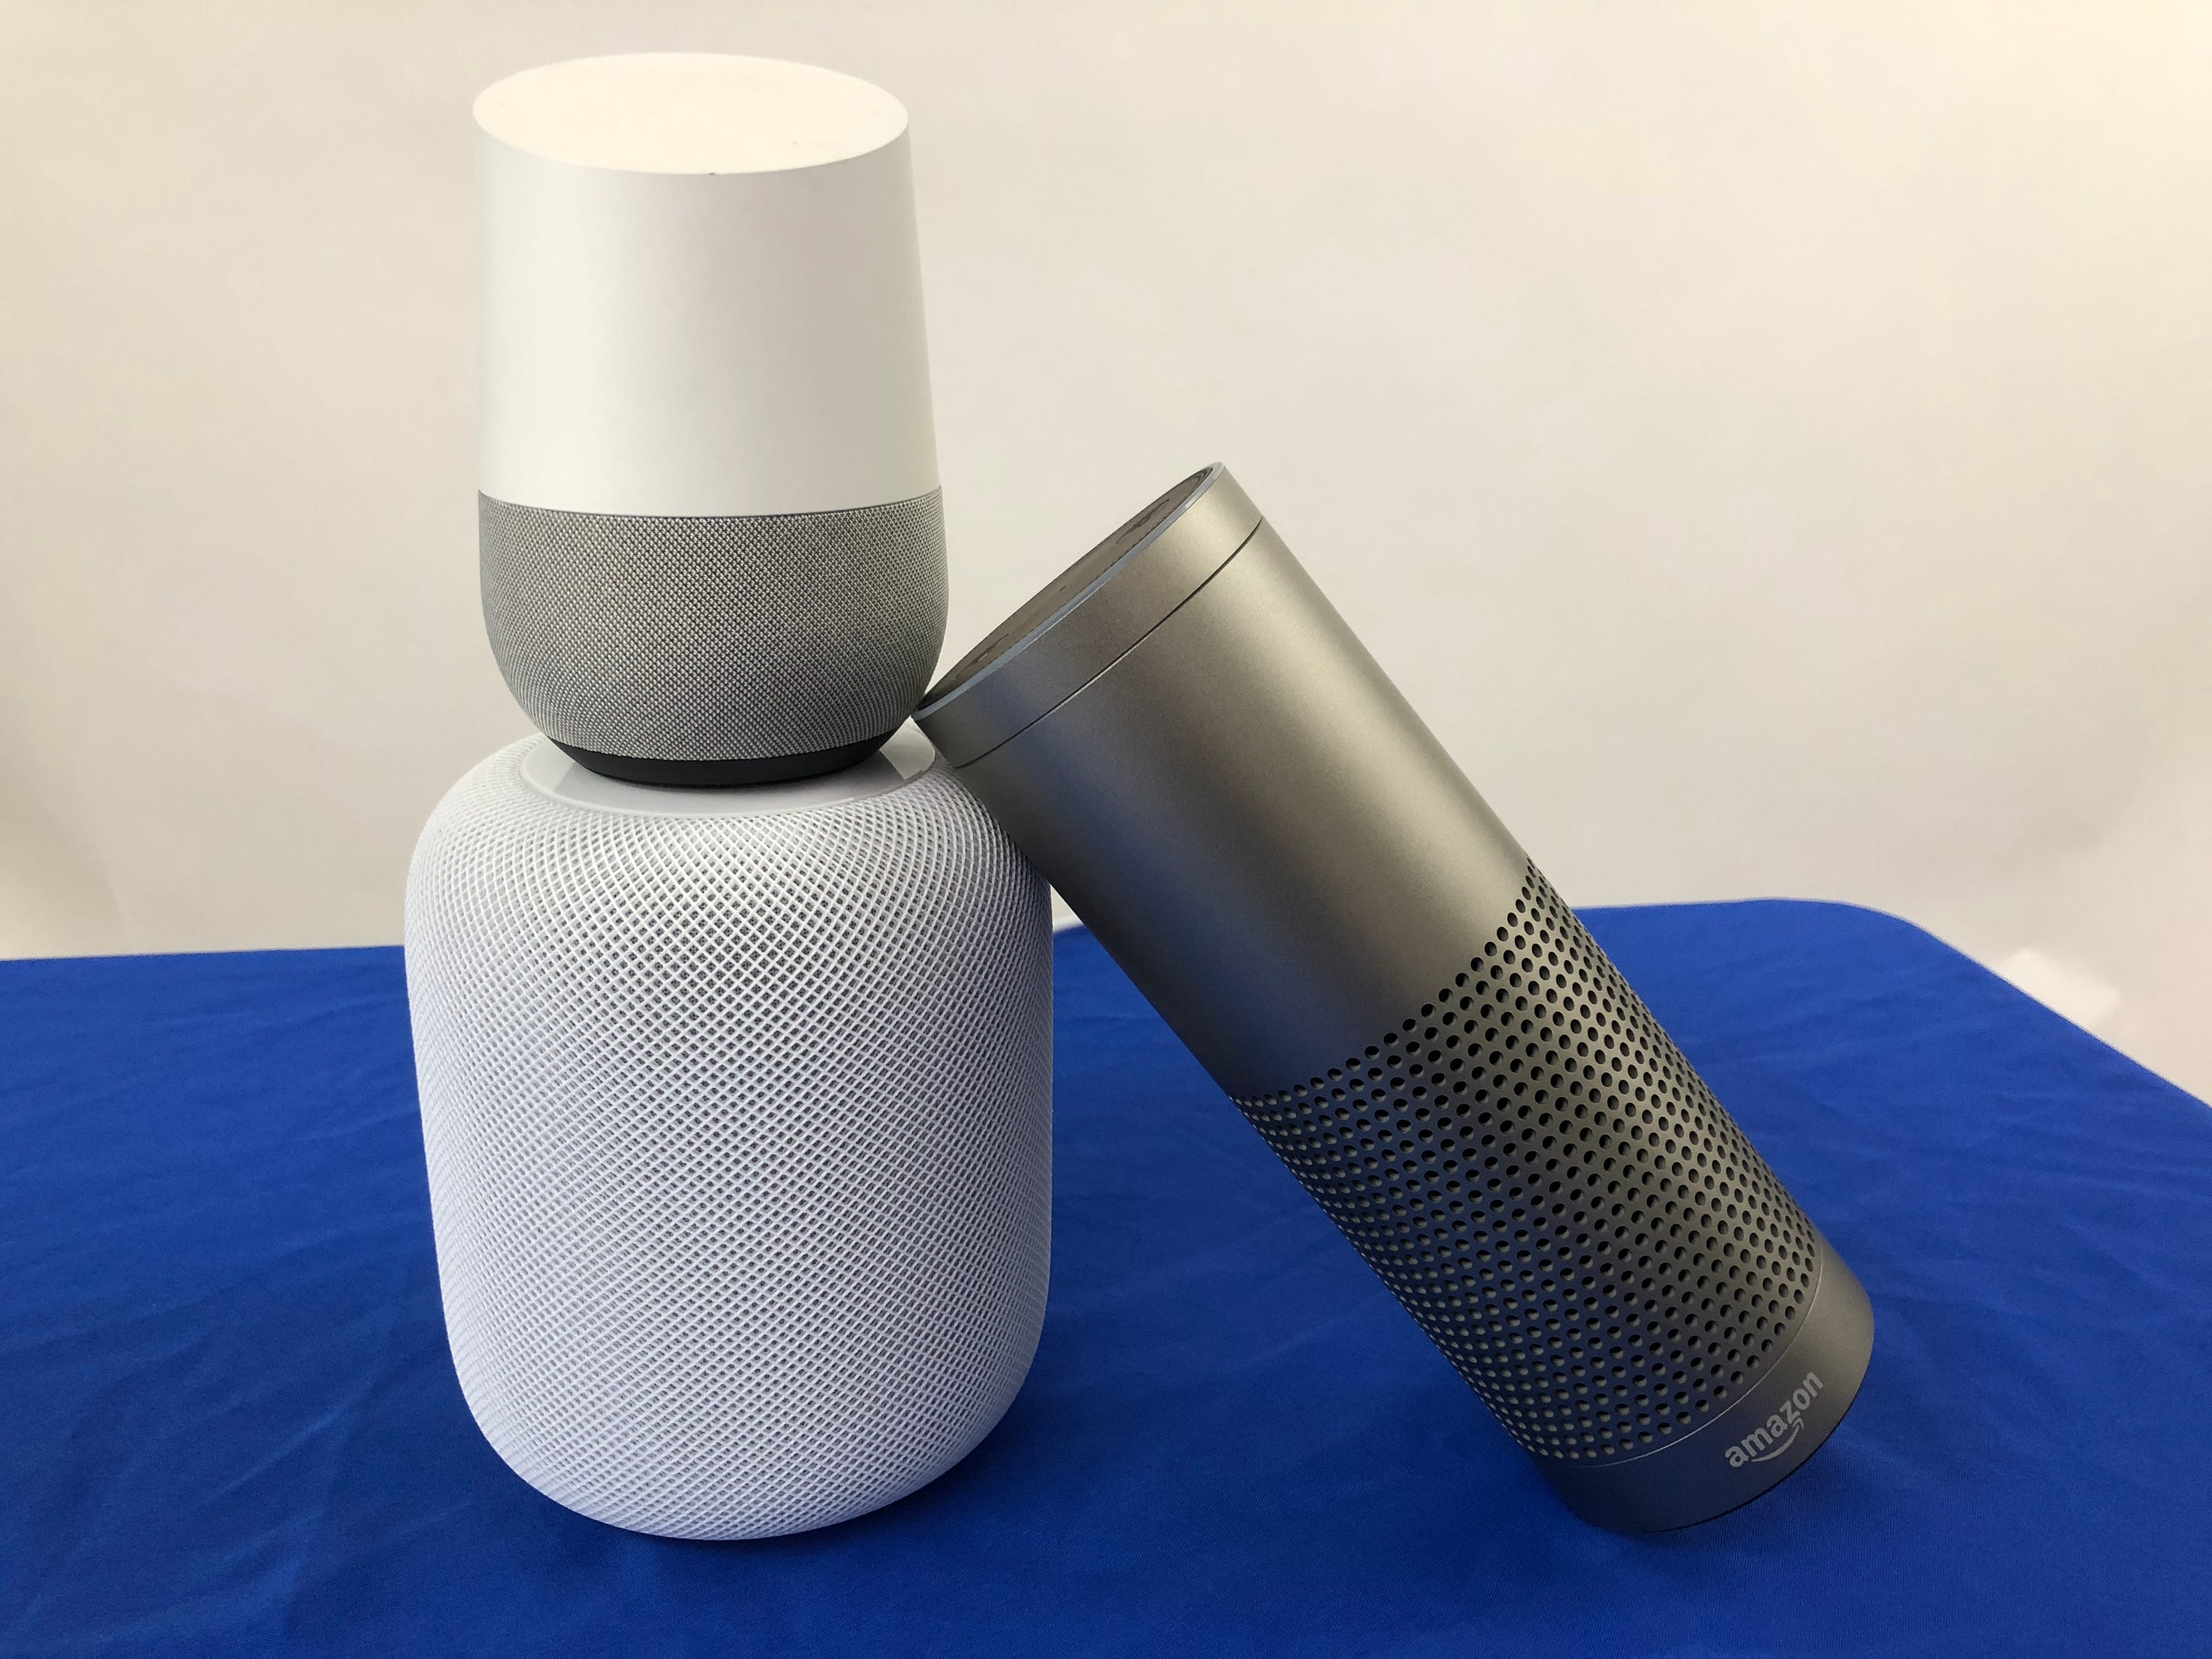 Amazon Echo, Apple HomePod or Google Home: which is smarter about playing music? We tested them